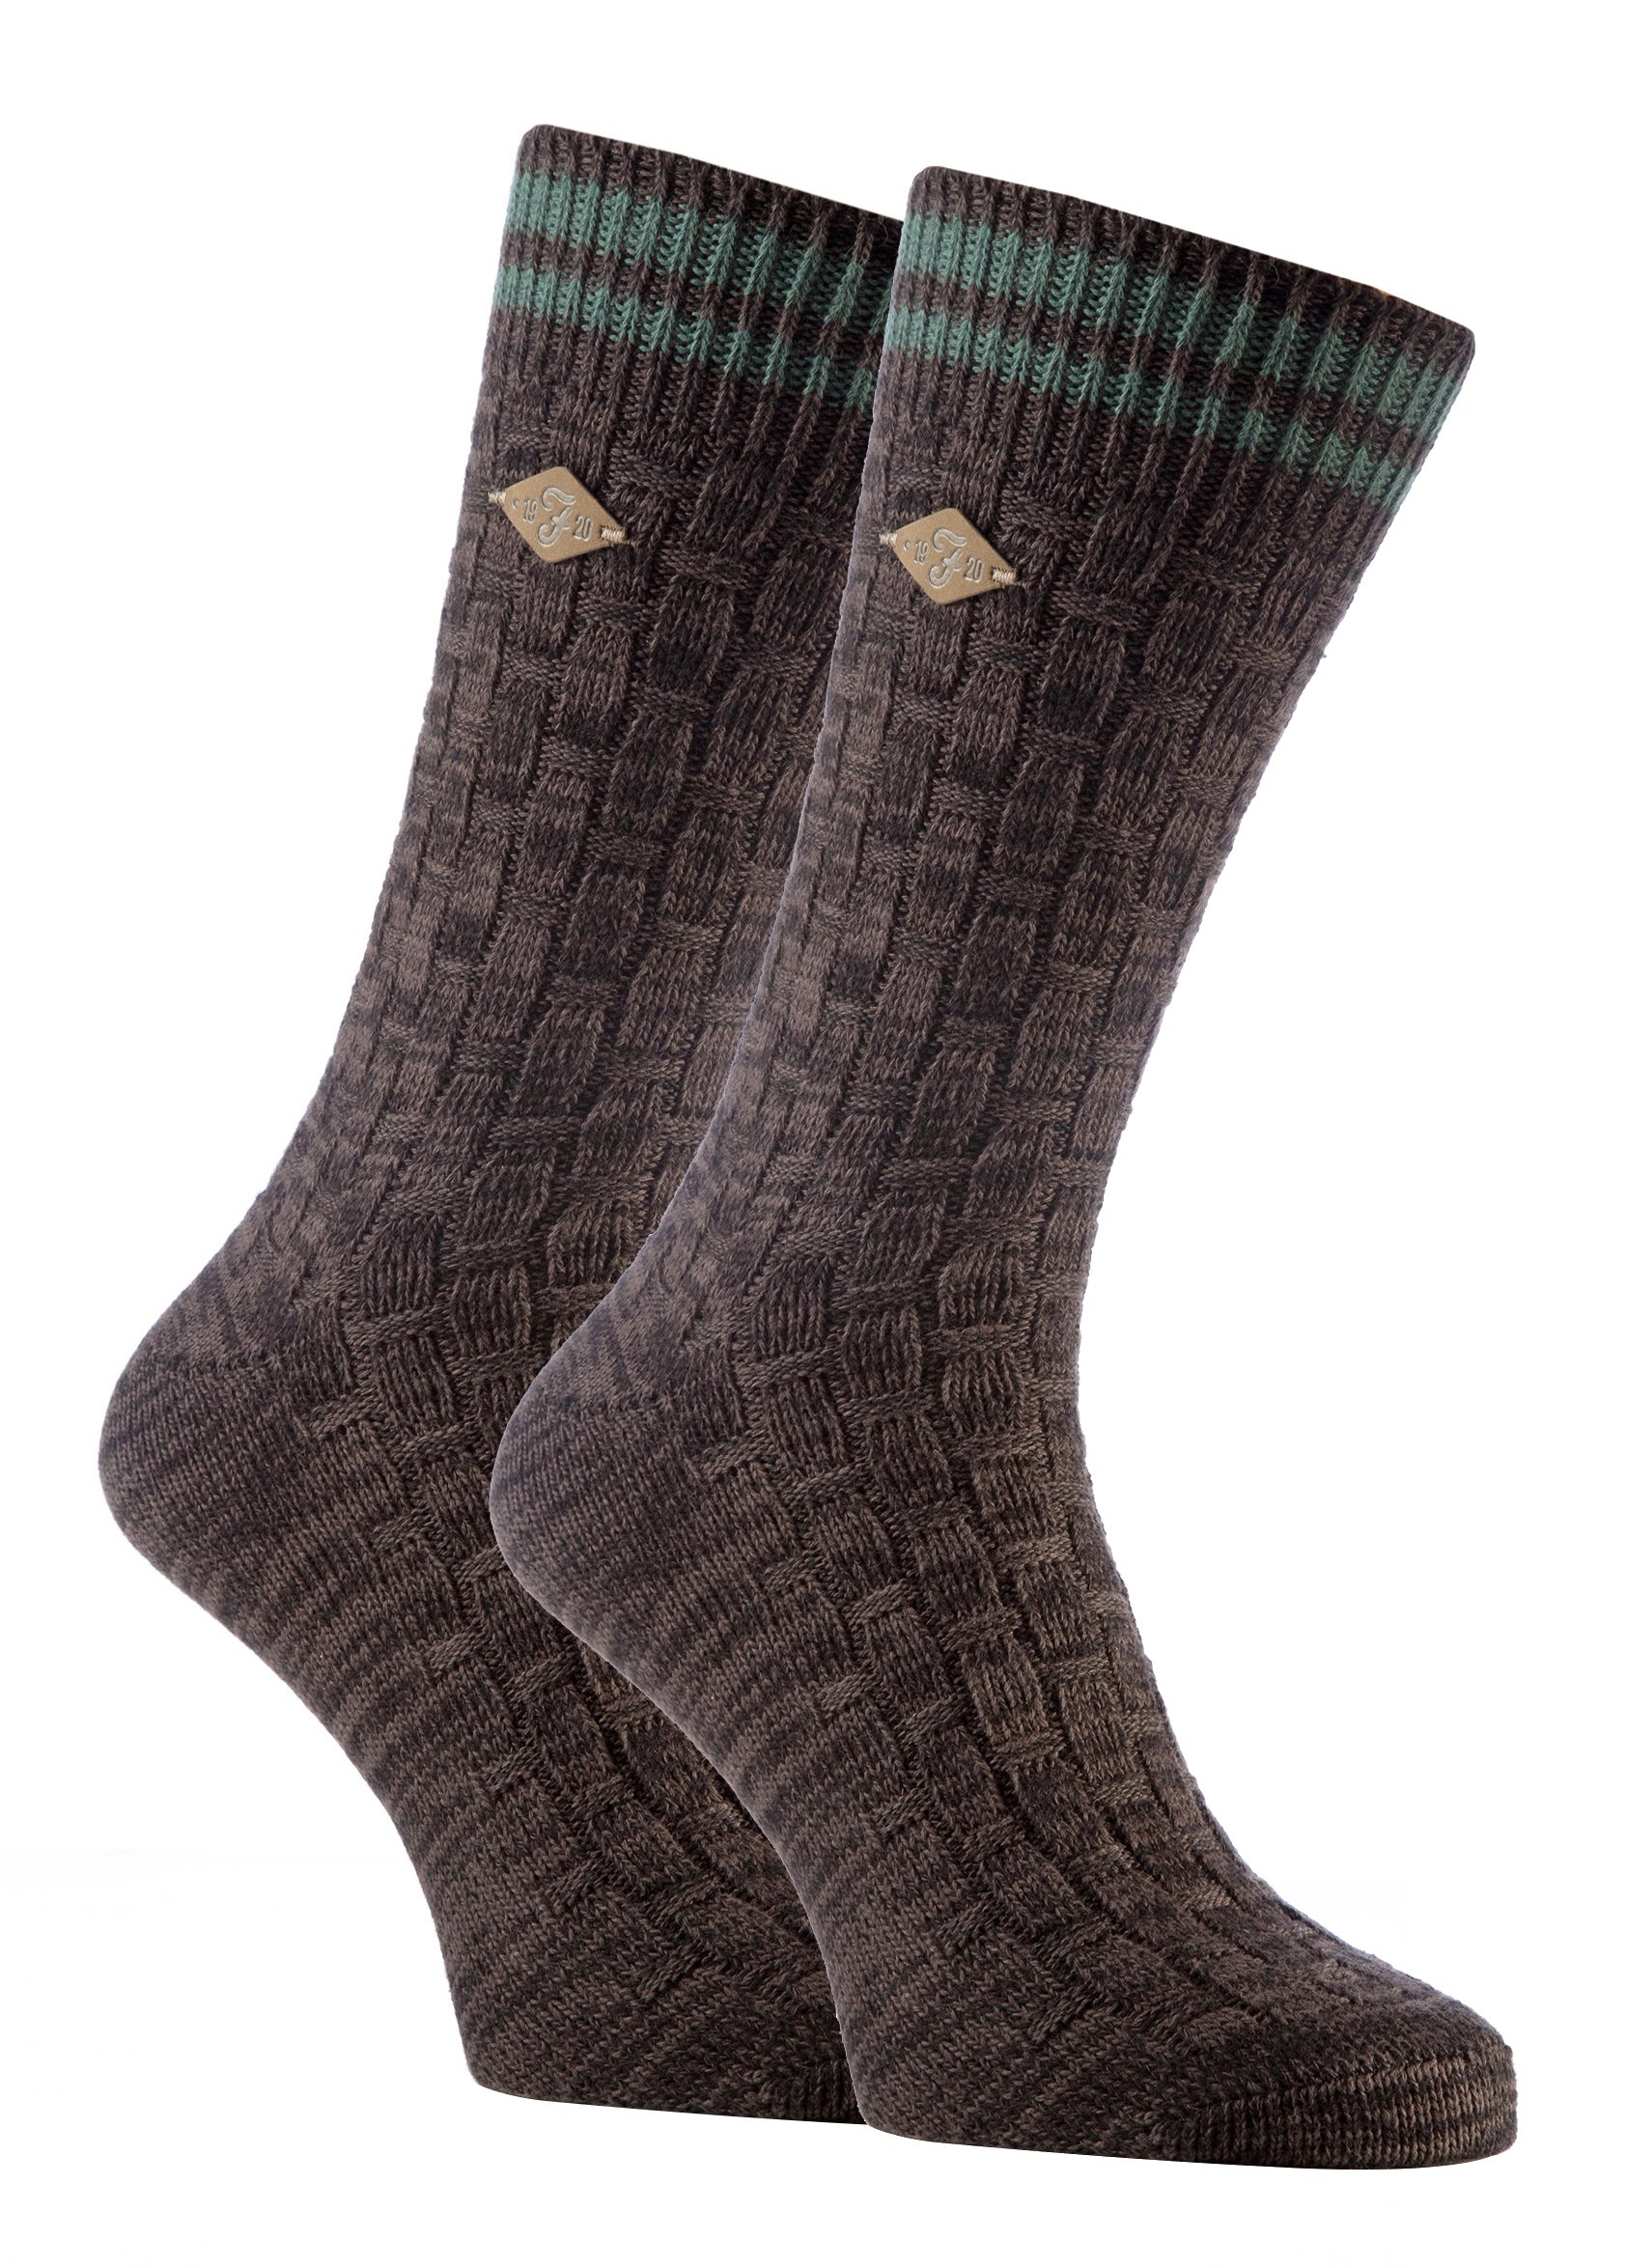 Farah - 2 Pack Mens Thick Cotton Vintage Short Crew Heavy Knit Socks for Boots (7-12 US, 04 Earth Brown)